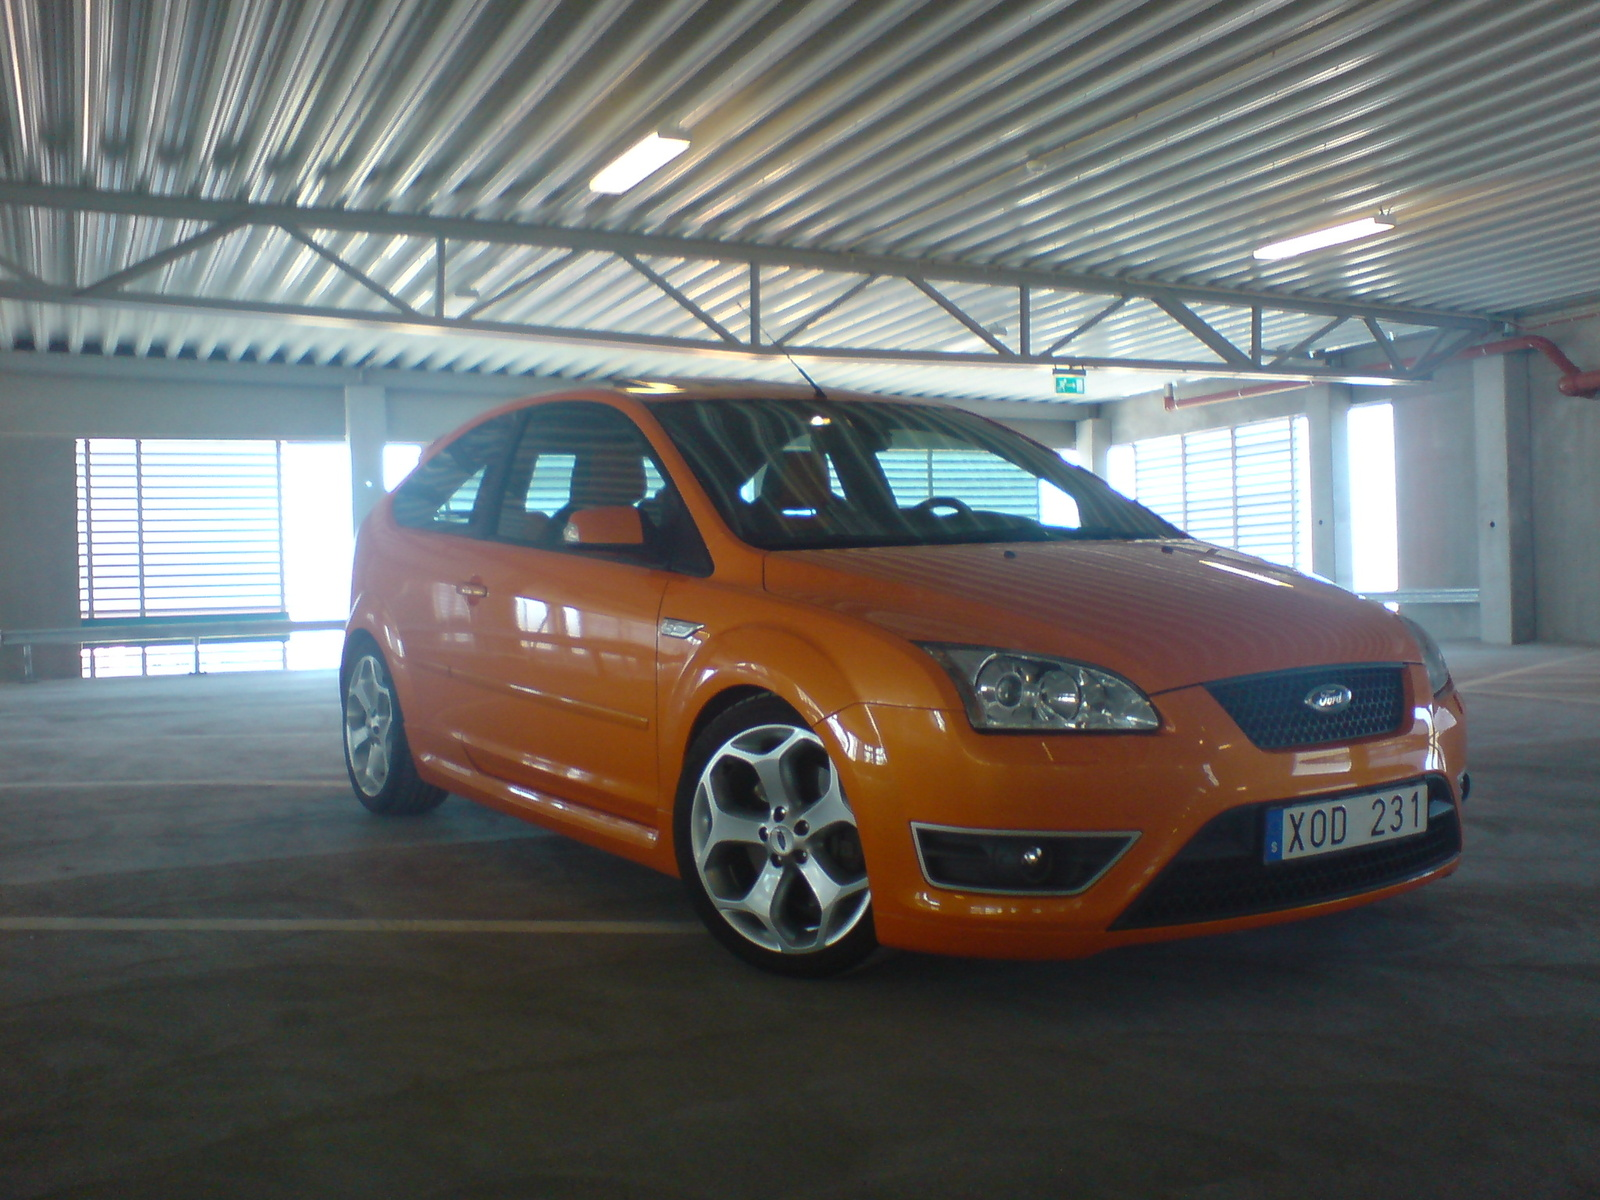 2003 Ford Focus Zx5 >> 2006 Ford Focus - Pictures - CarGurus